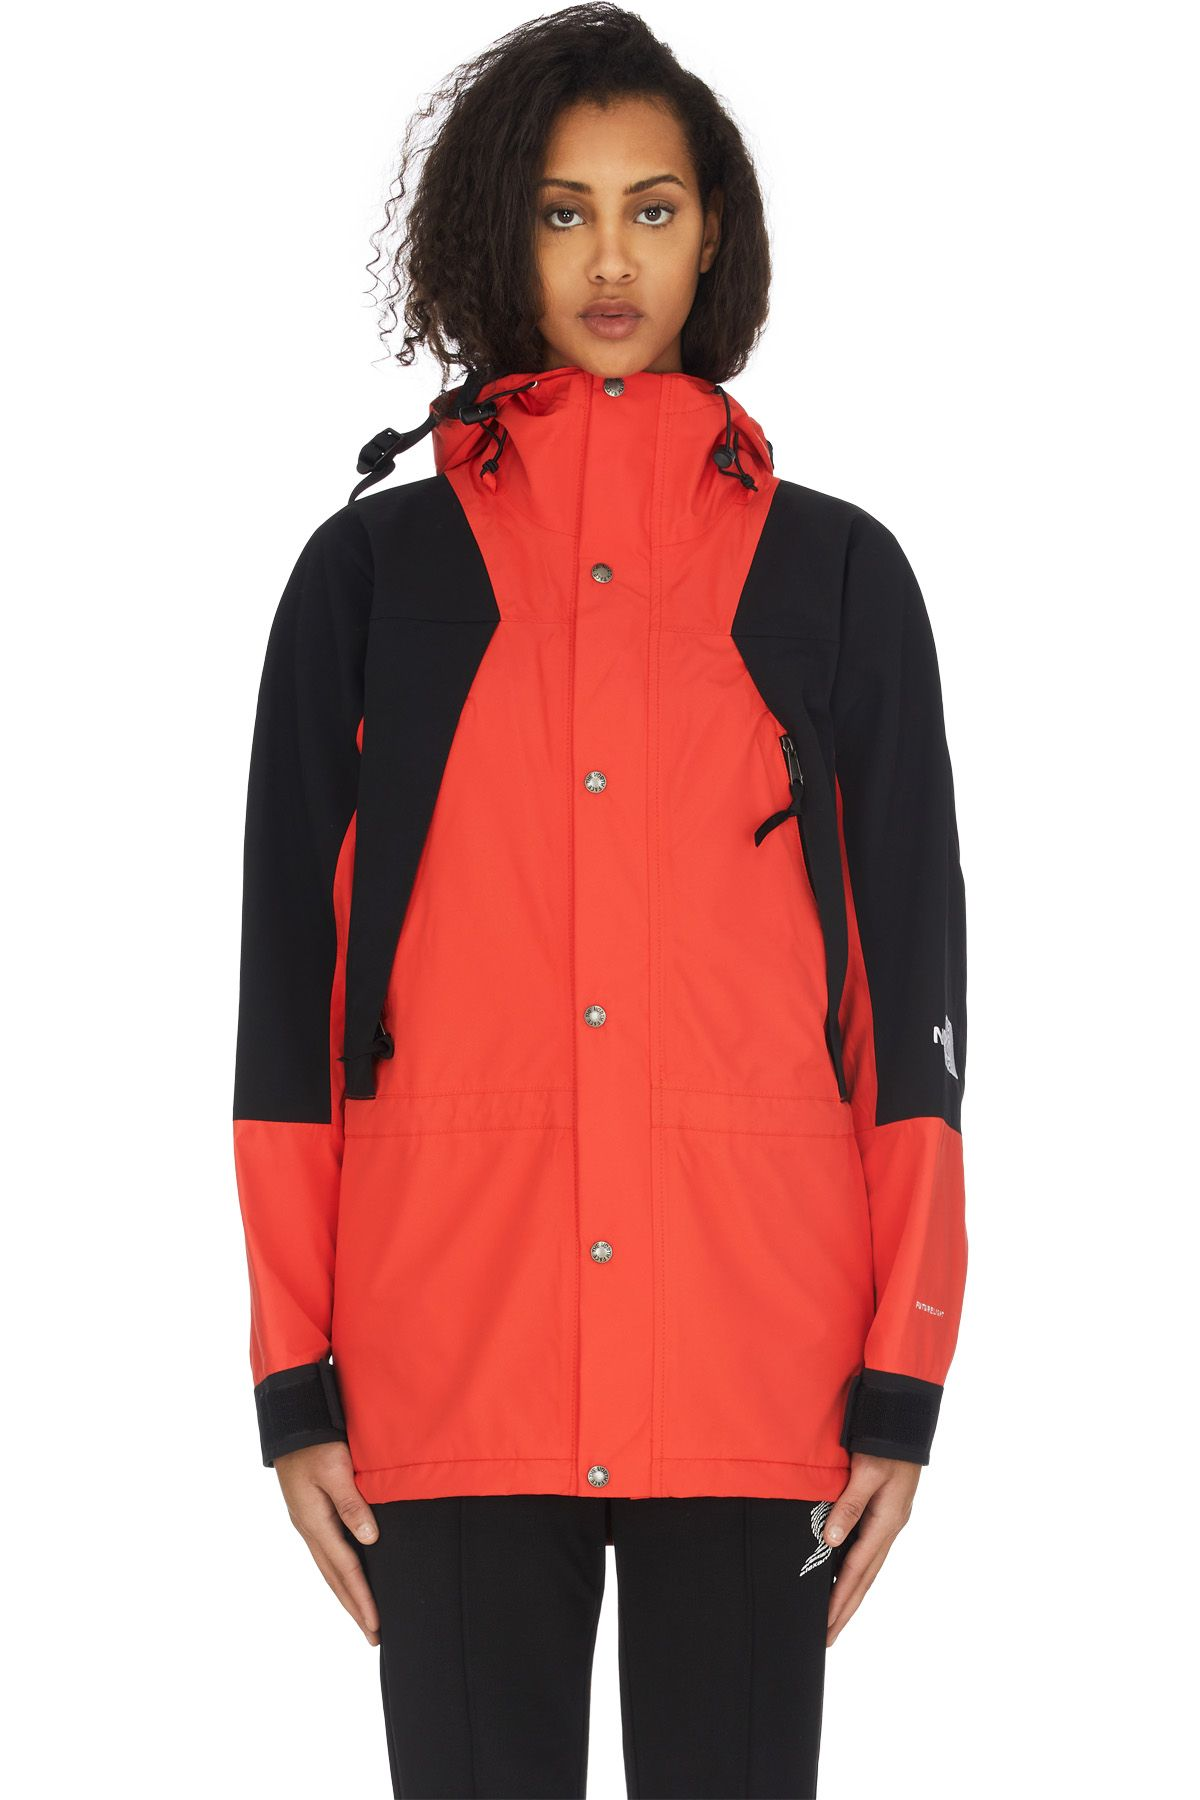 The North Face 1994 Retro Mountain Light Futurelight Jacket Firey Red The North Face Jackets North Face Jacket [ 1800 x 1200 Pixel ]